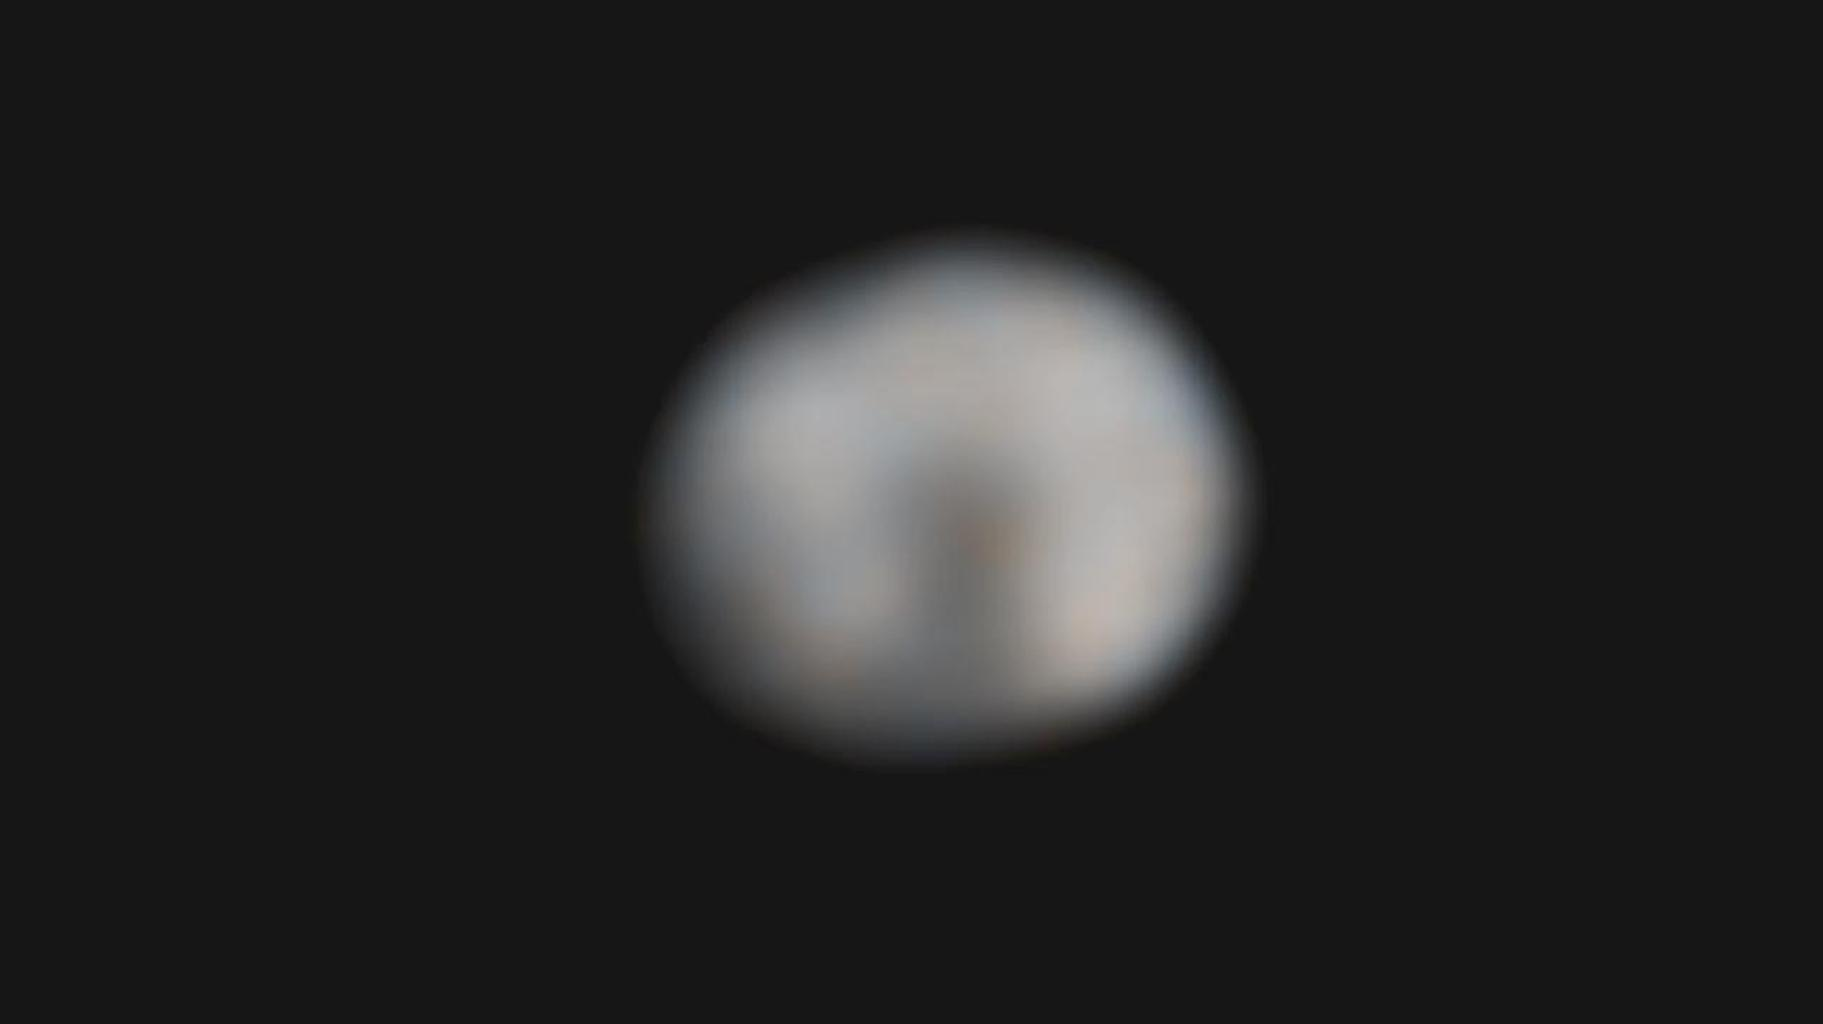 Hubble's Wide Field Camera 3 observed the potato-shaped asteroid in preparation for the visit by NASA's Dawn spacecraft in 2011. This is one frame from a movie showing the difference in brightness and color on the asteroid's surface.